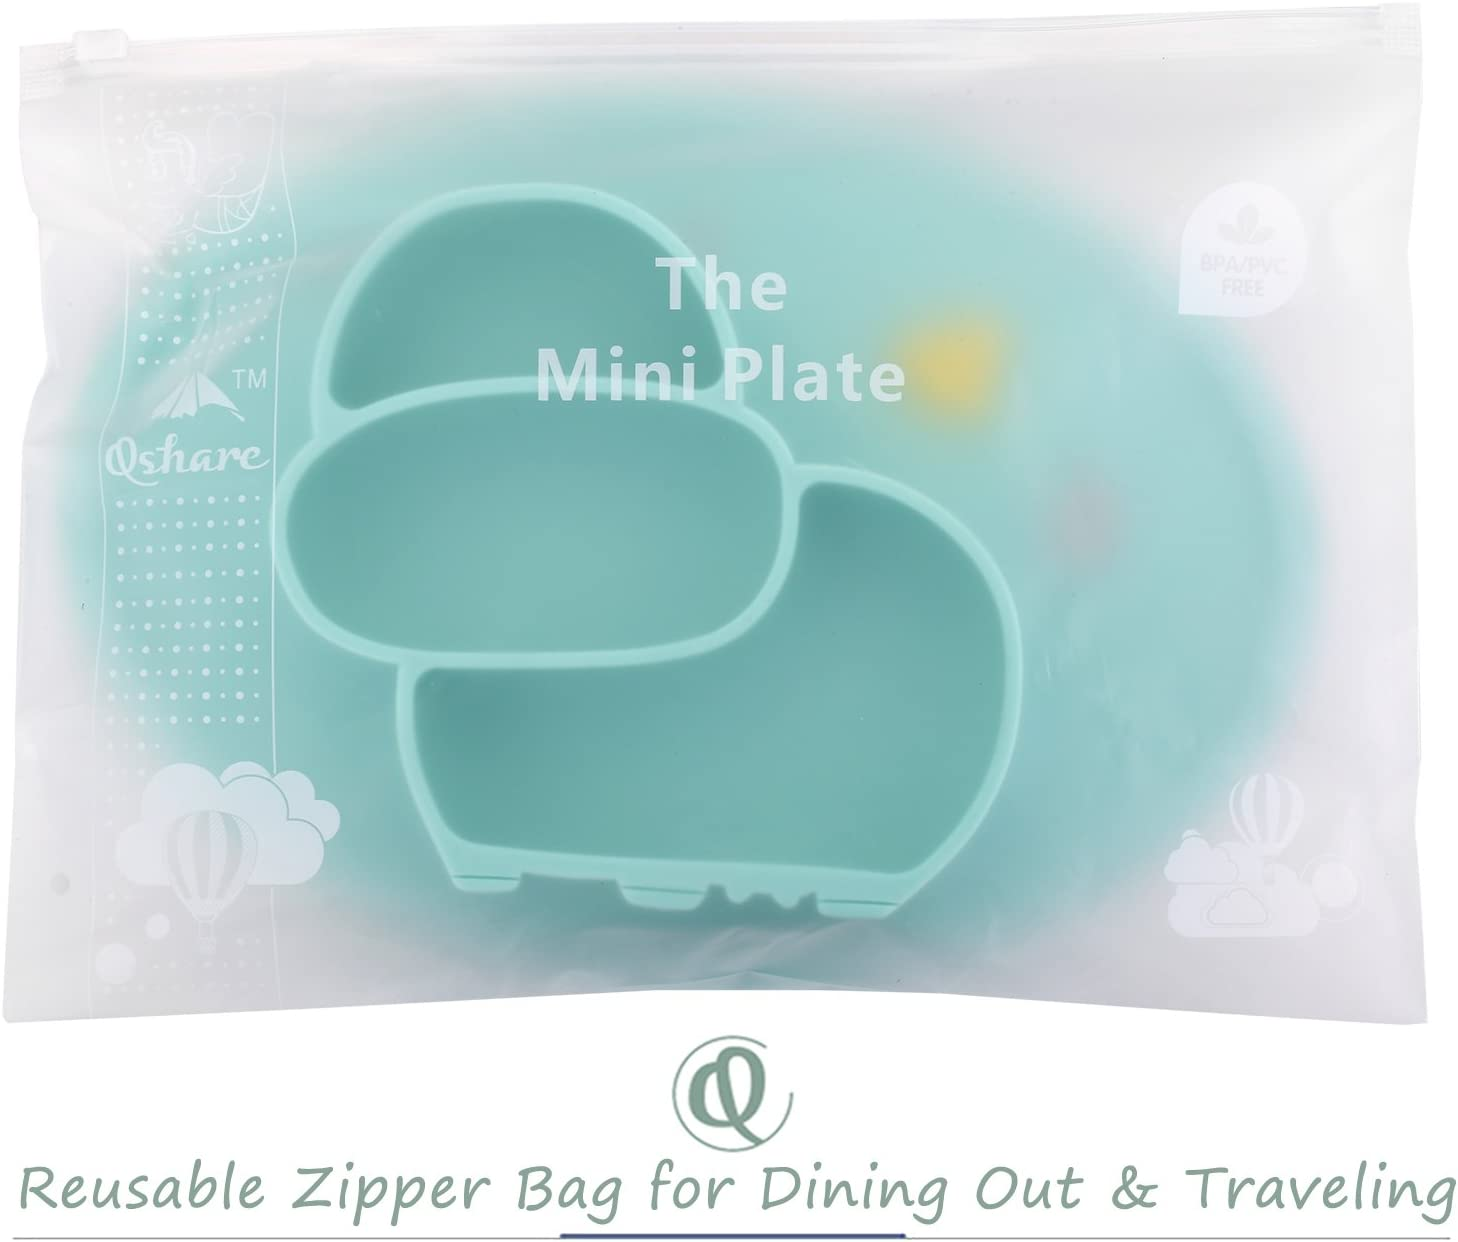 BPA-Free FDA Approved Strong Suction Plates for Toddlers Dishwasher and Microwave Safe Silicone Placemat 28 * 20 * 3cm Qshare Toddler Plate Portable Baby Plate for Toddlers and Kids